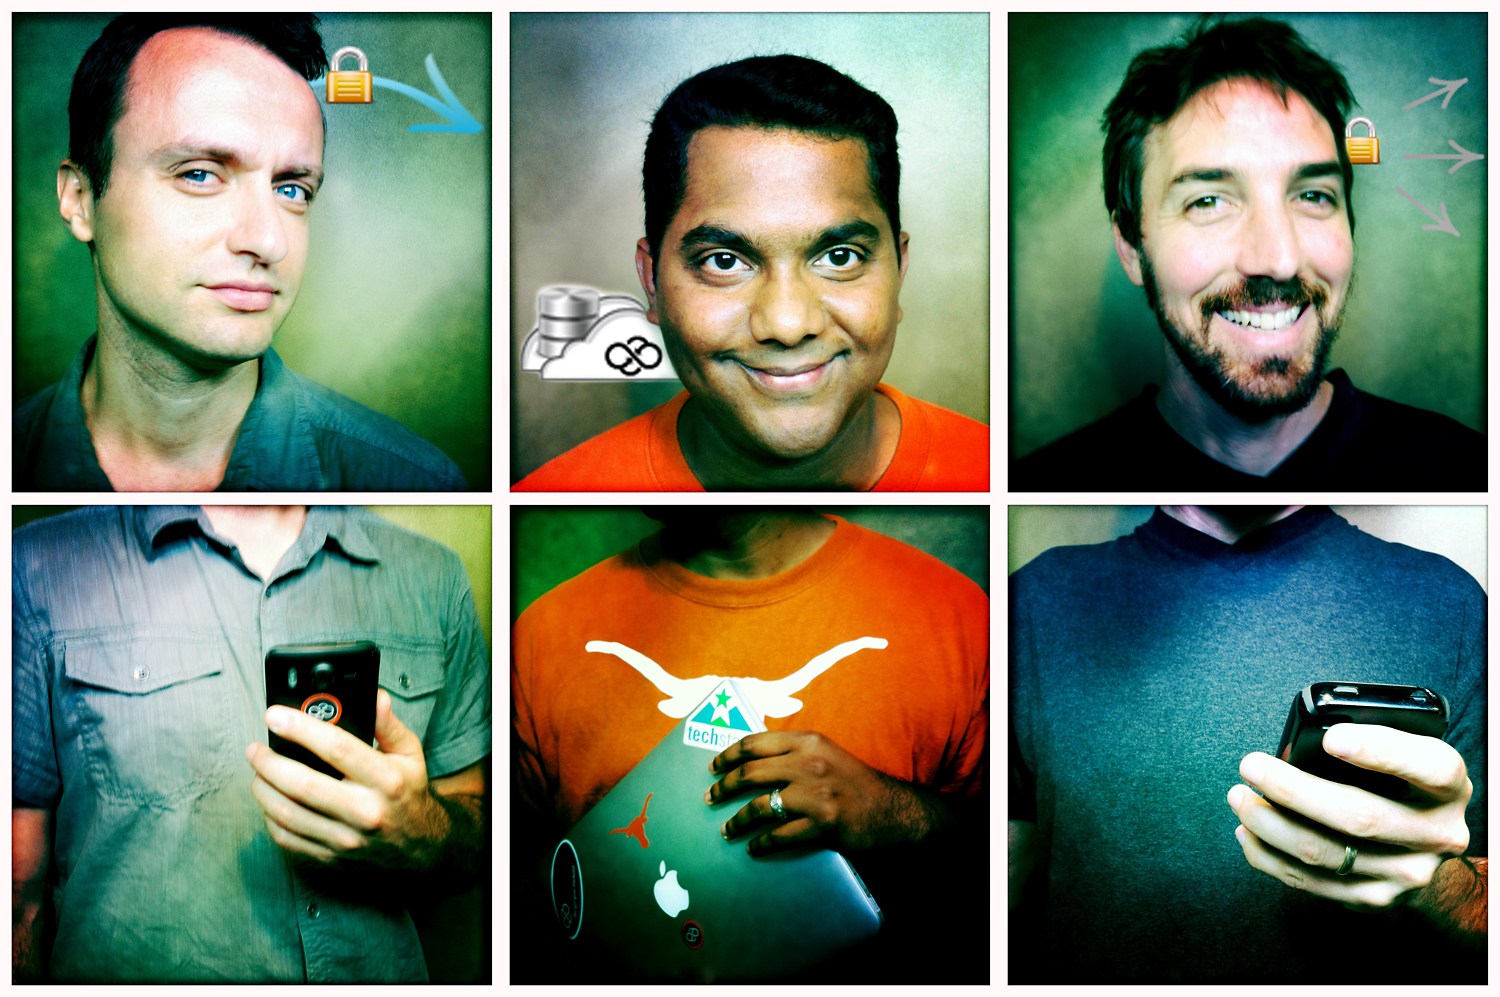 These folks do back-end support for mobile apps - so I photographed them with an iPhone